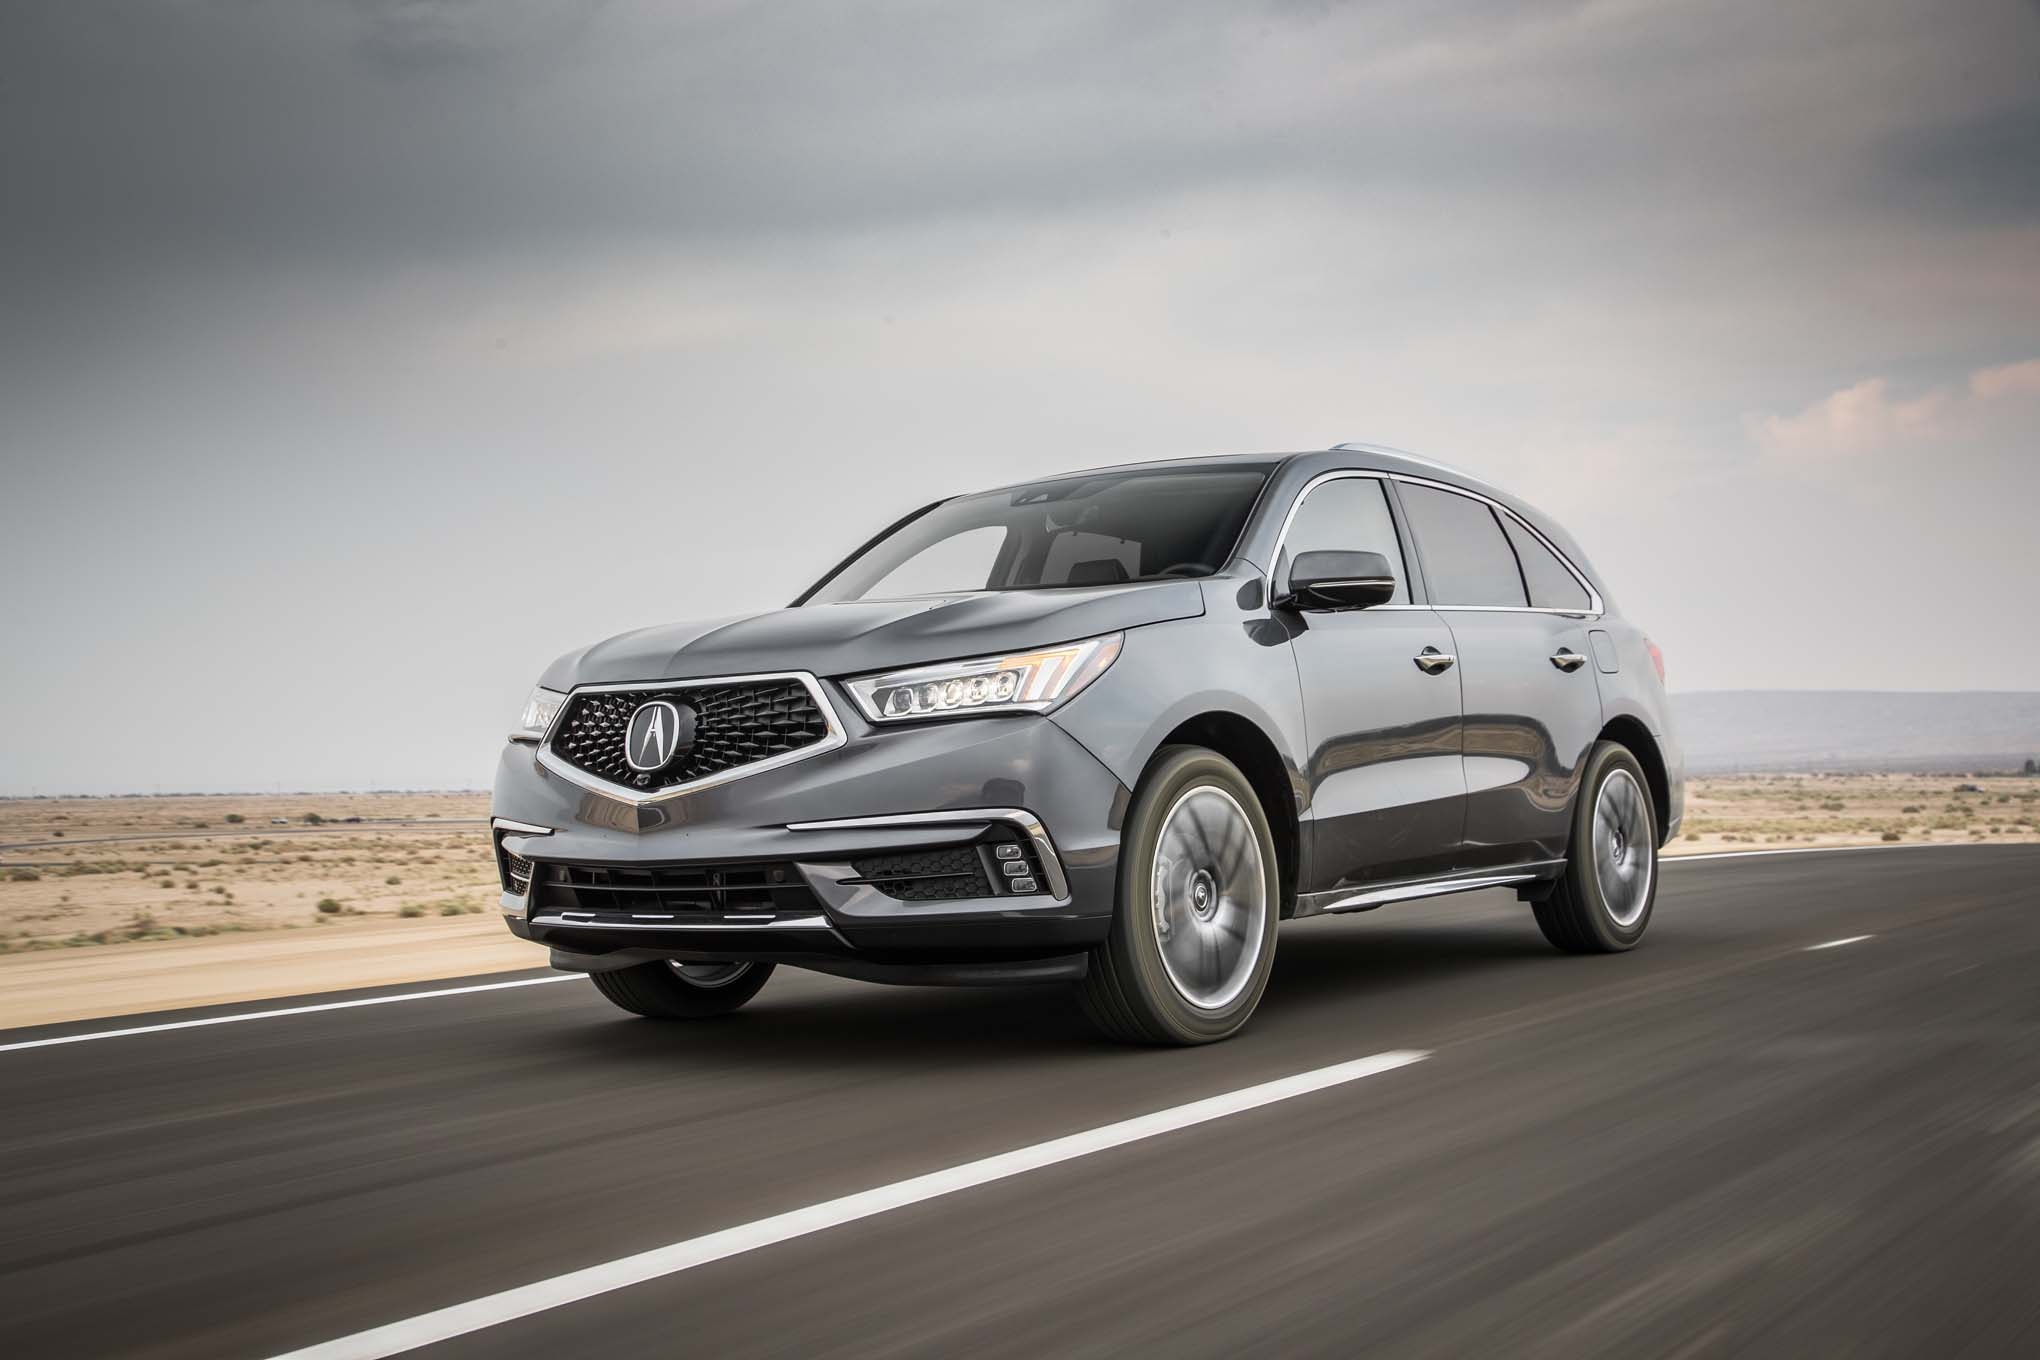 2017 Acura MDX SH AWD front three quarter in motion 04